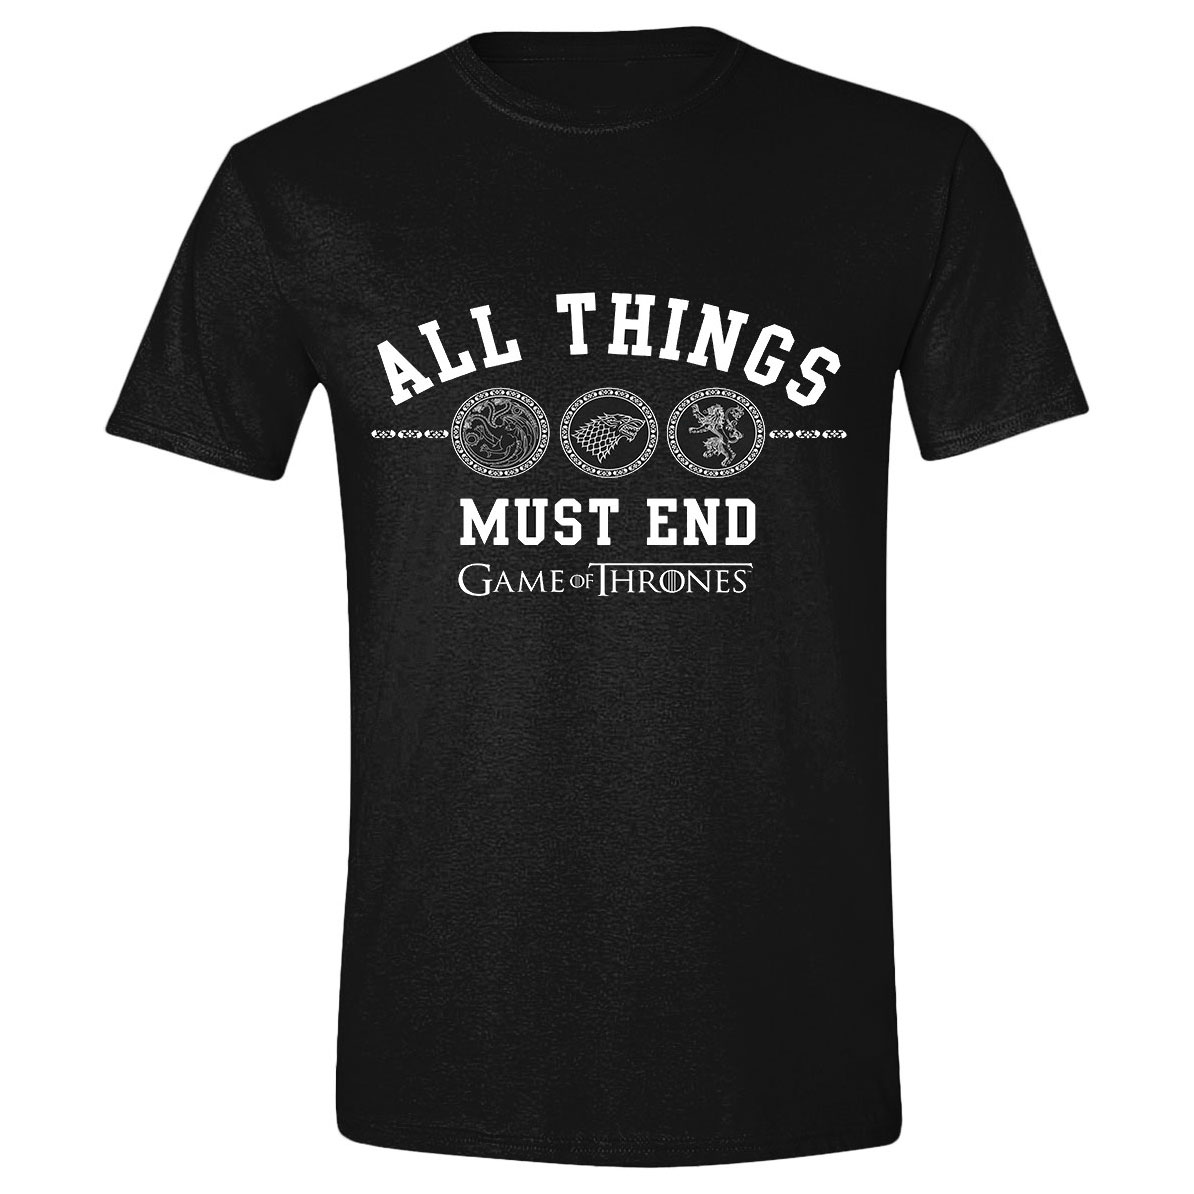 Game of Thrones T-Shirt All Things Must End Size S